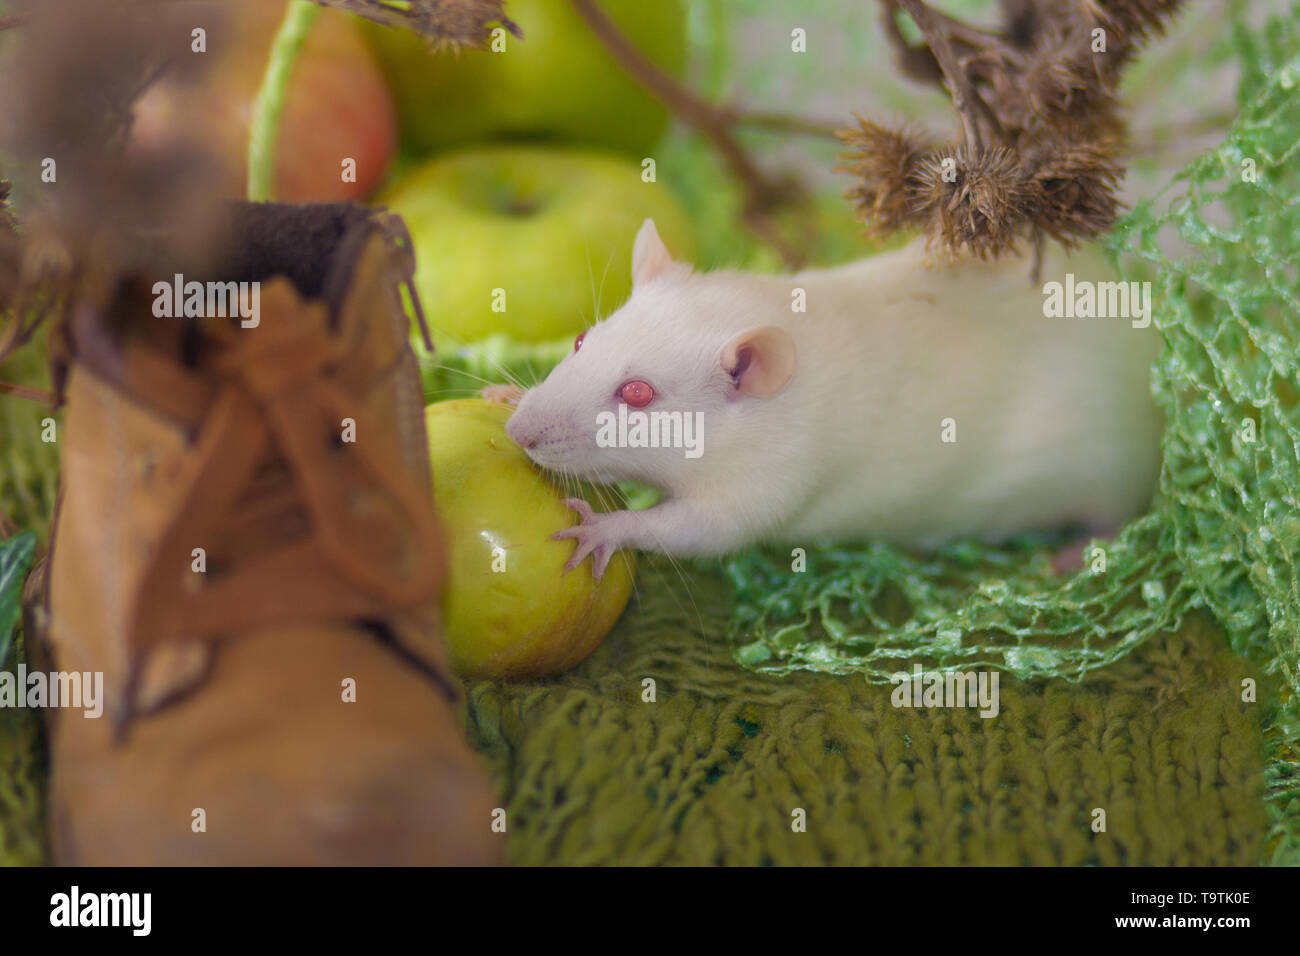 The concept of vintage. White rat with apples. The mouse collects the fruit. Dacha season. - Stock Image